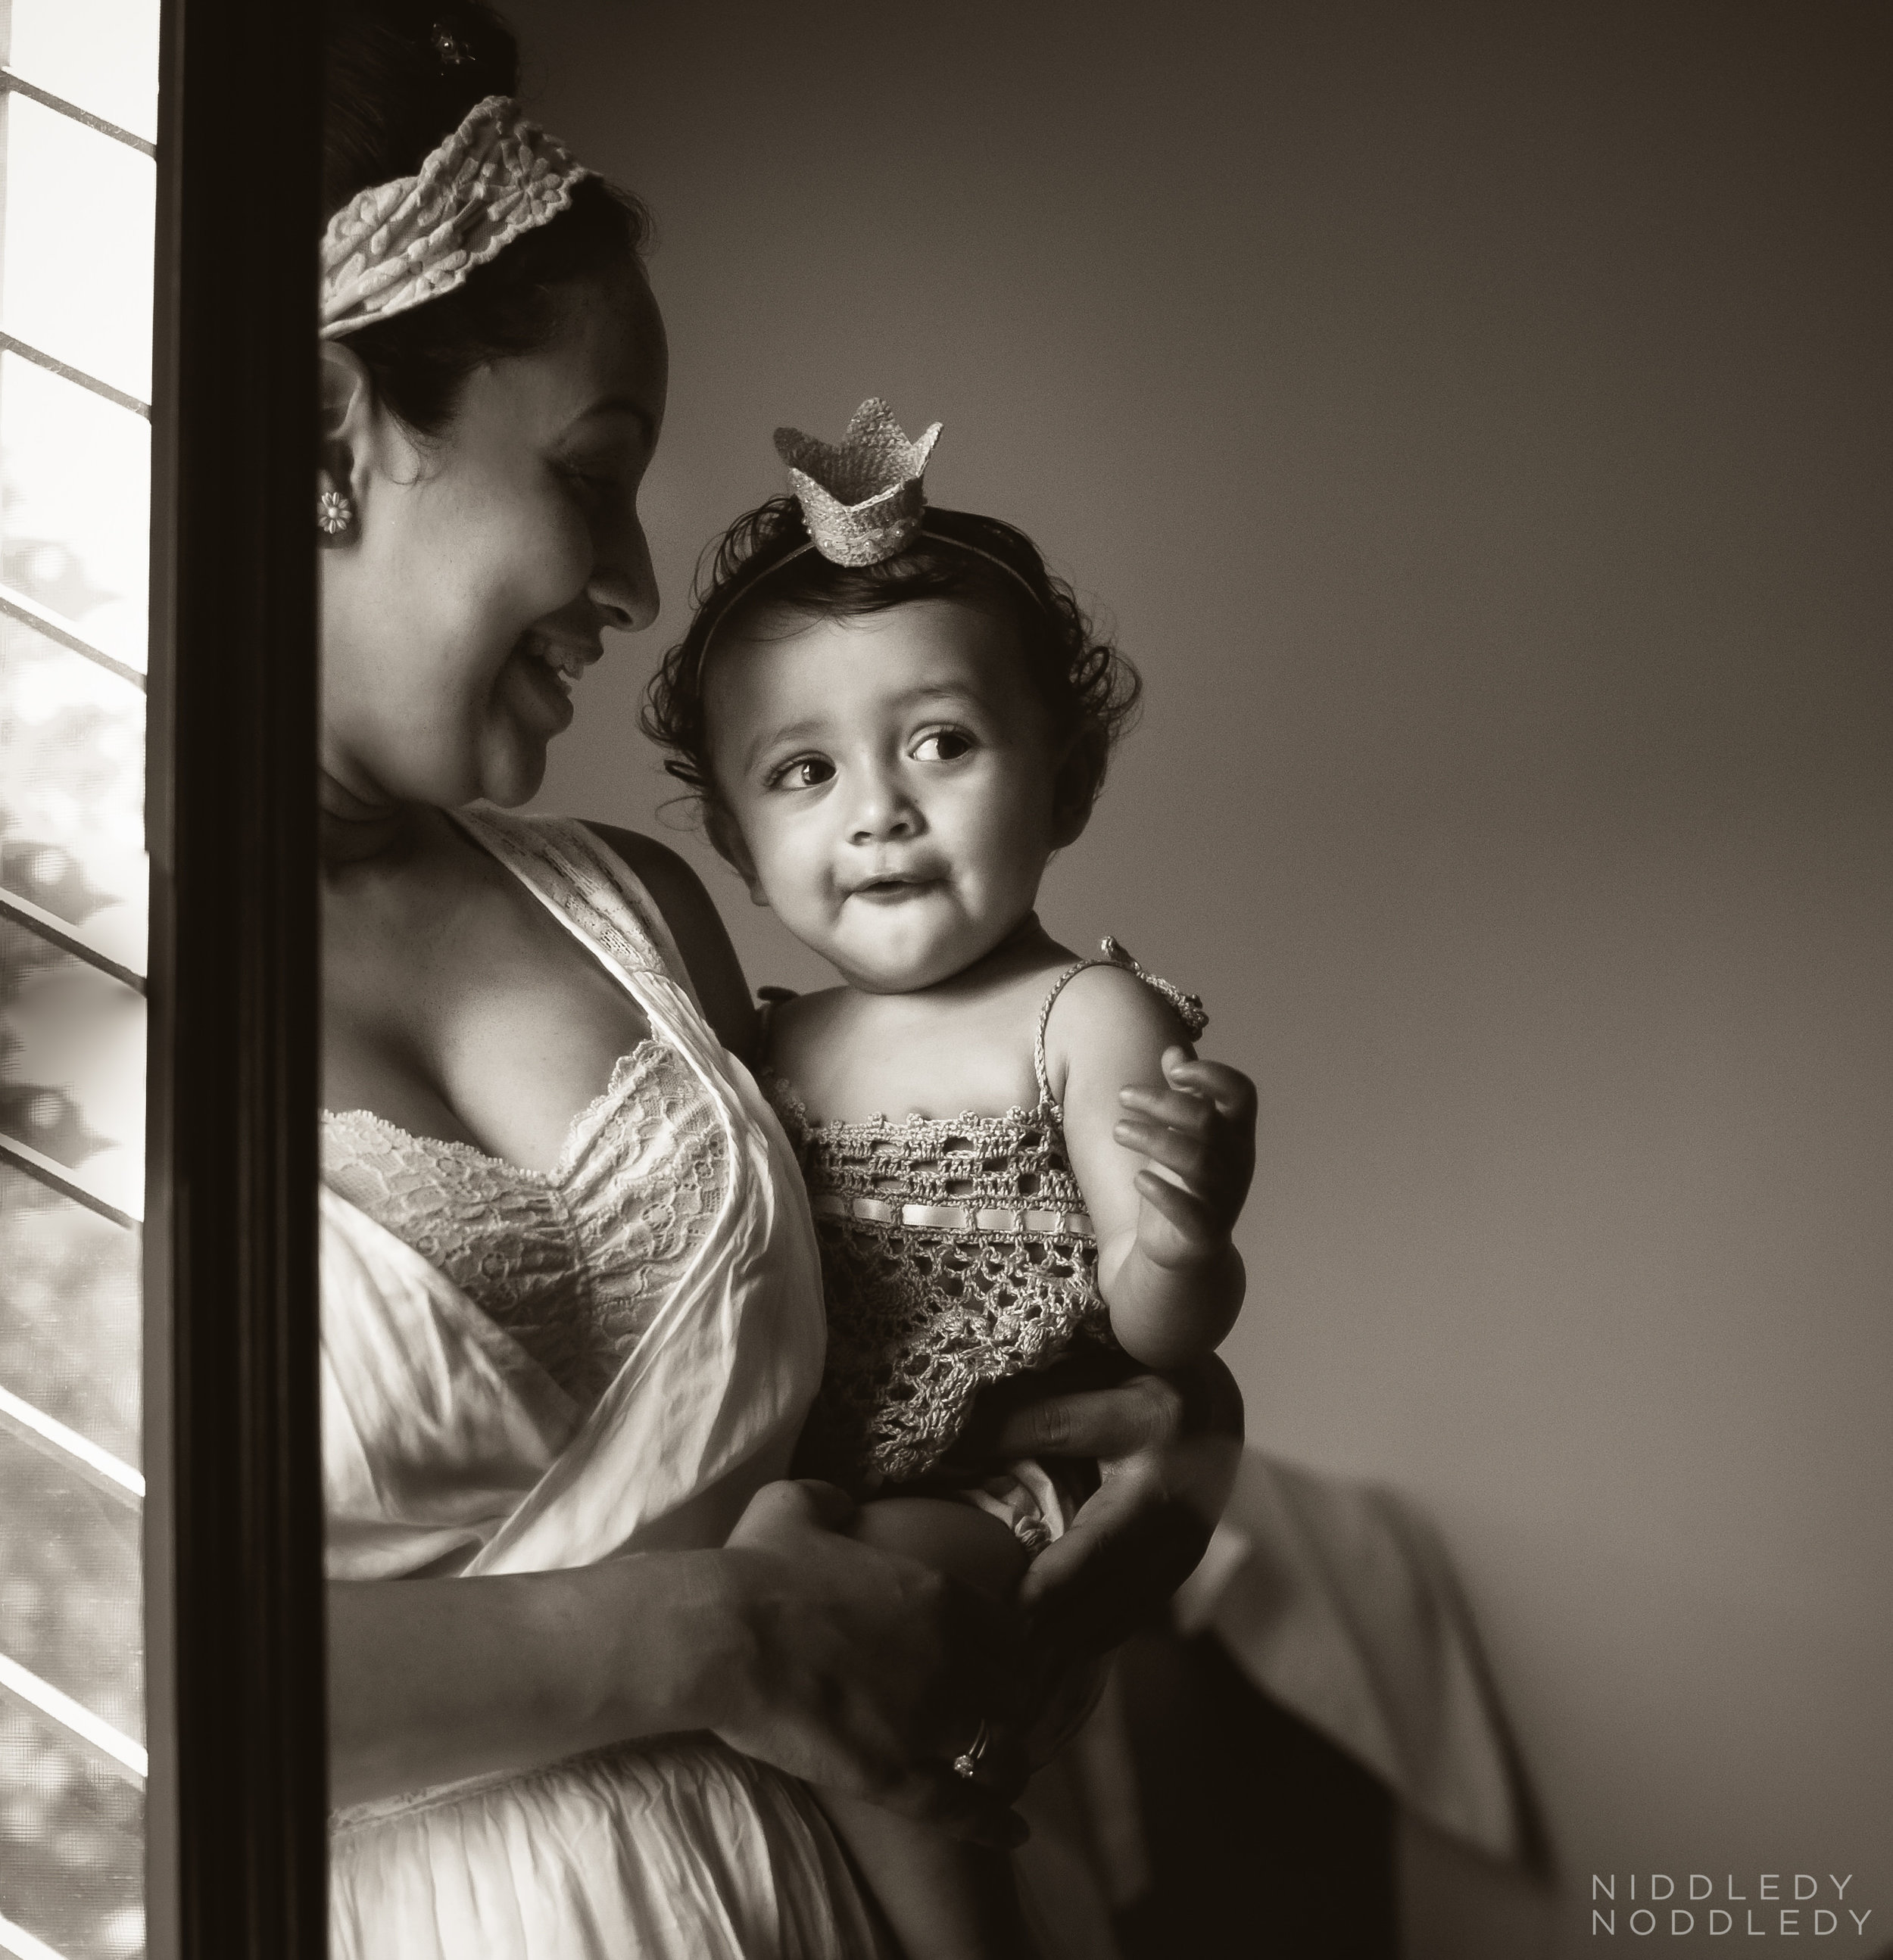 Maternity, Newborn and Children Photoshoots ❤ NiddledyNoddledy.com ~ Bellies and Babies Photography, Calcutta - 33.jpg